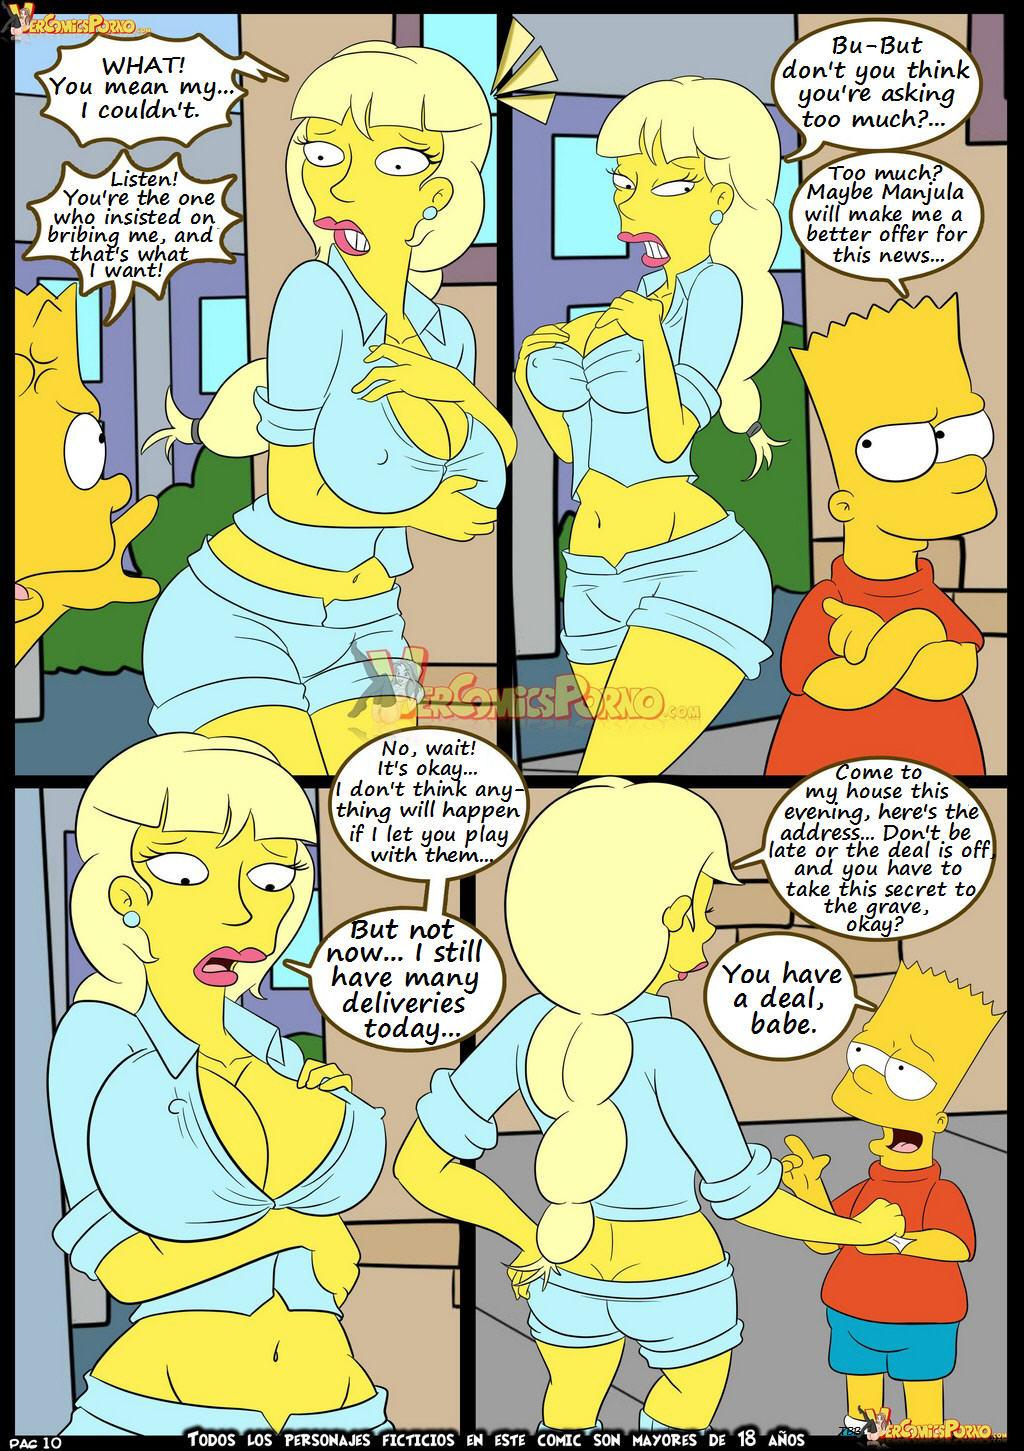 11 48 - The Simpsons. Part 7.